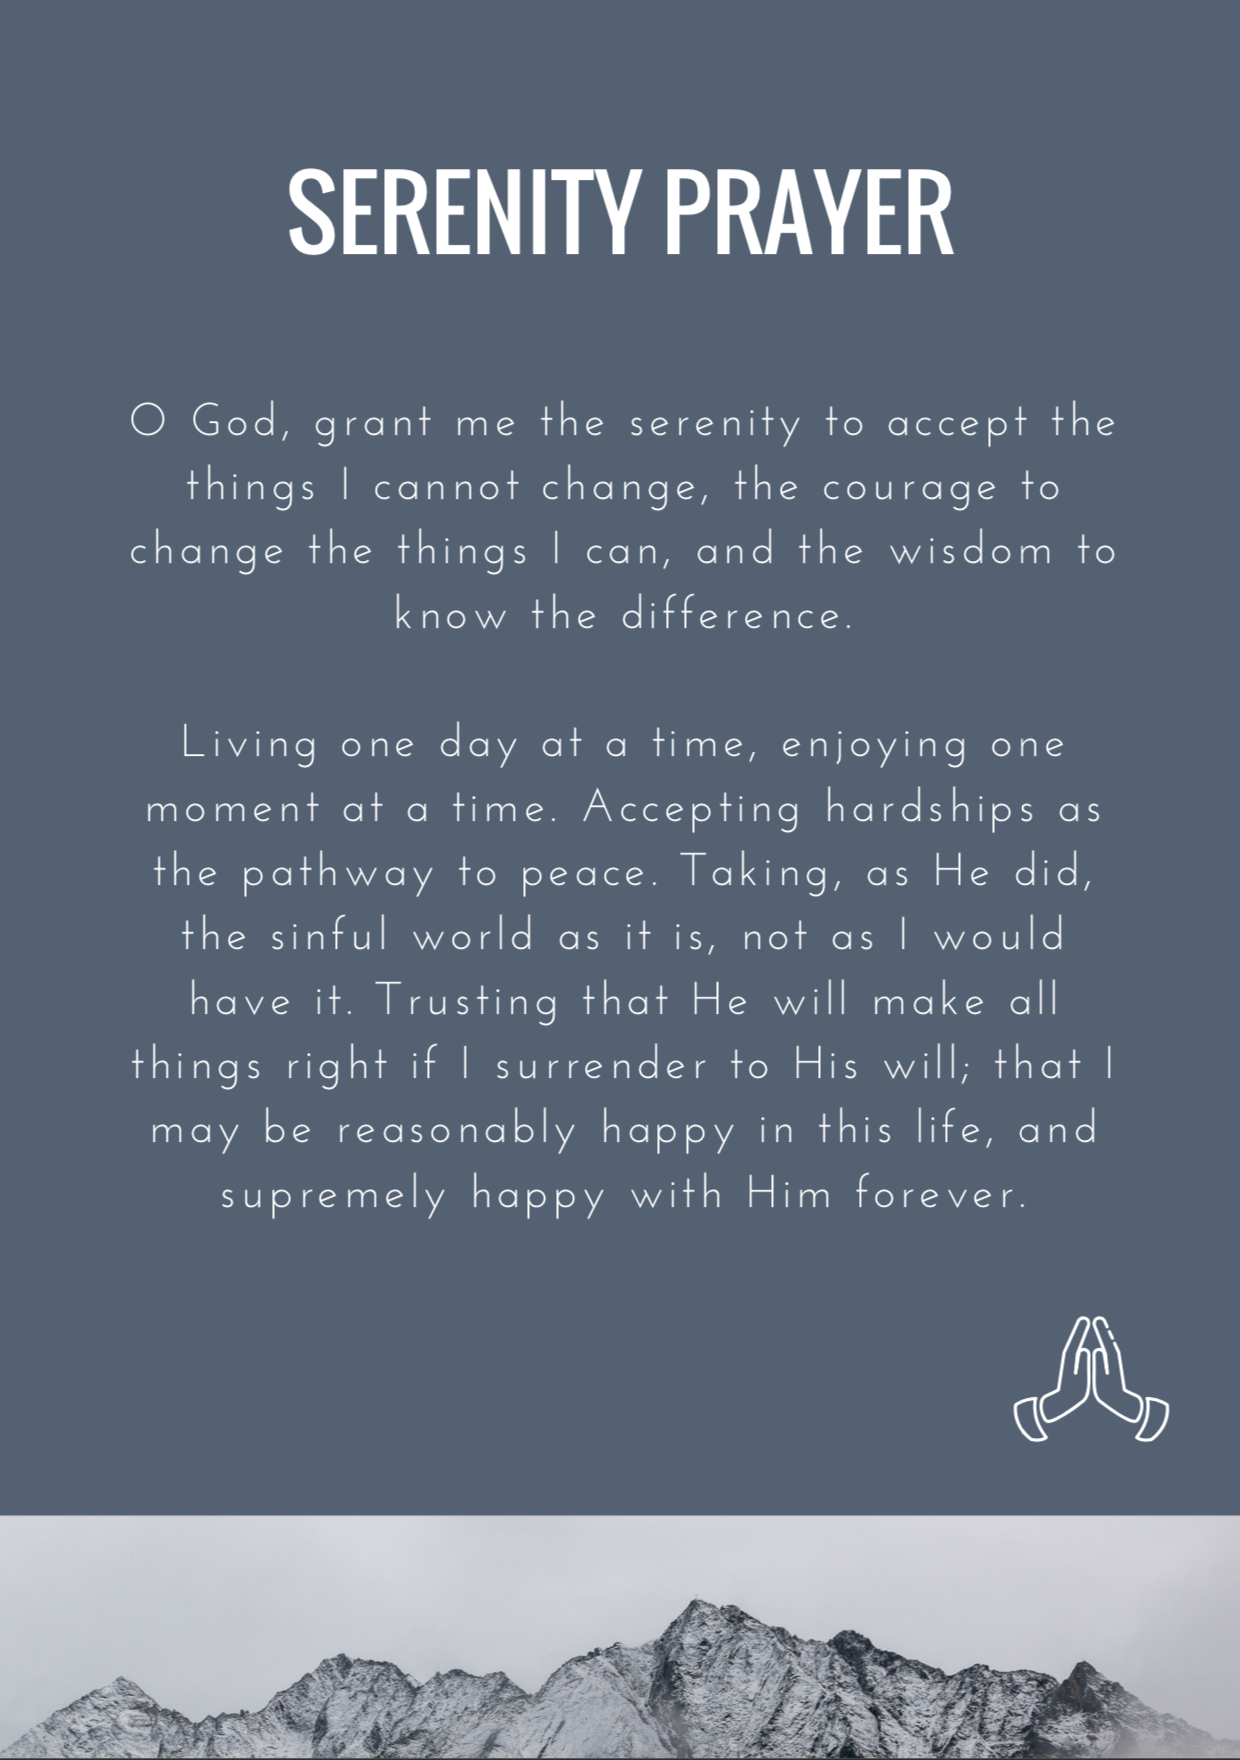 God Is Good - Serenity Prayer.png